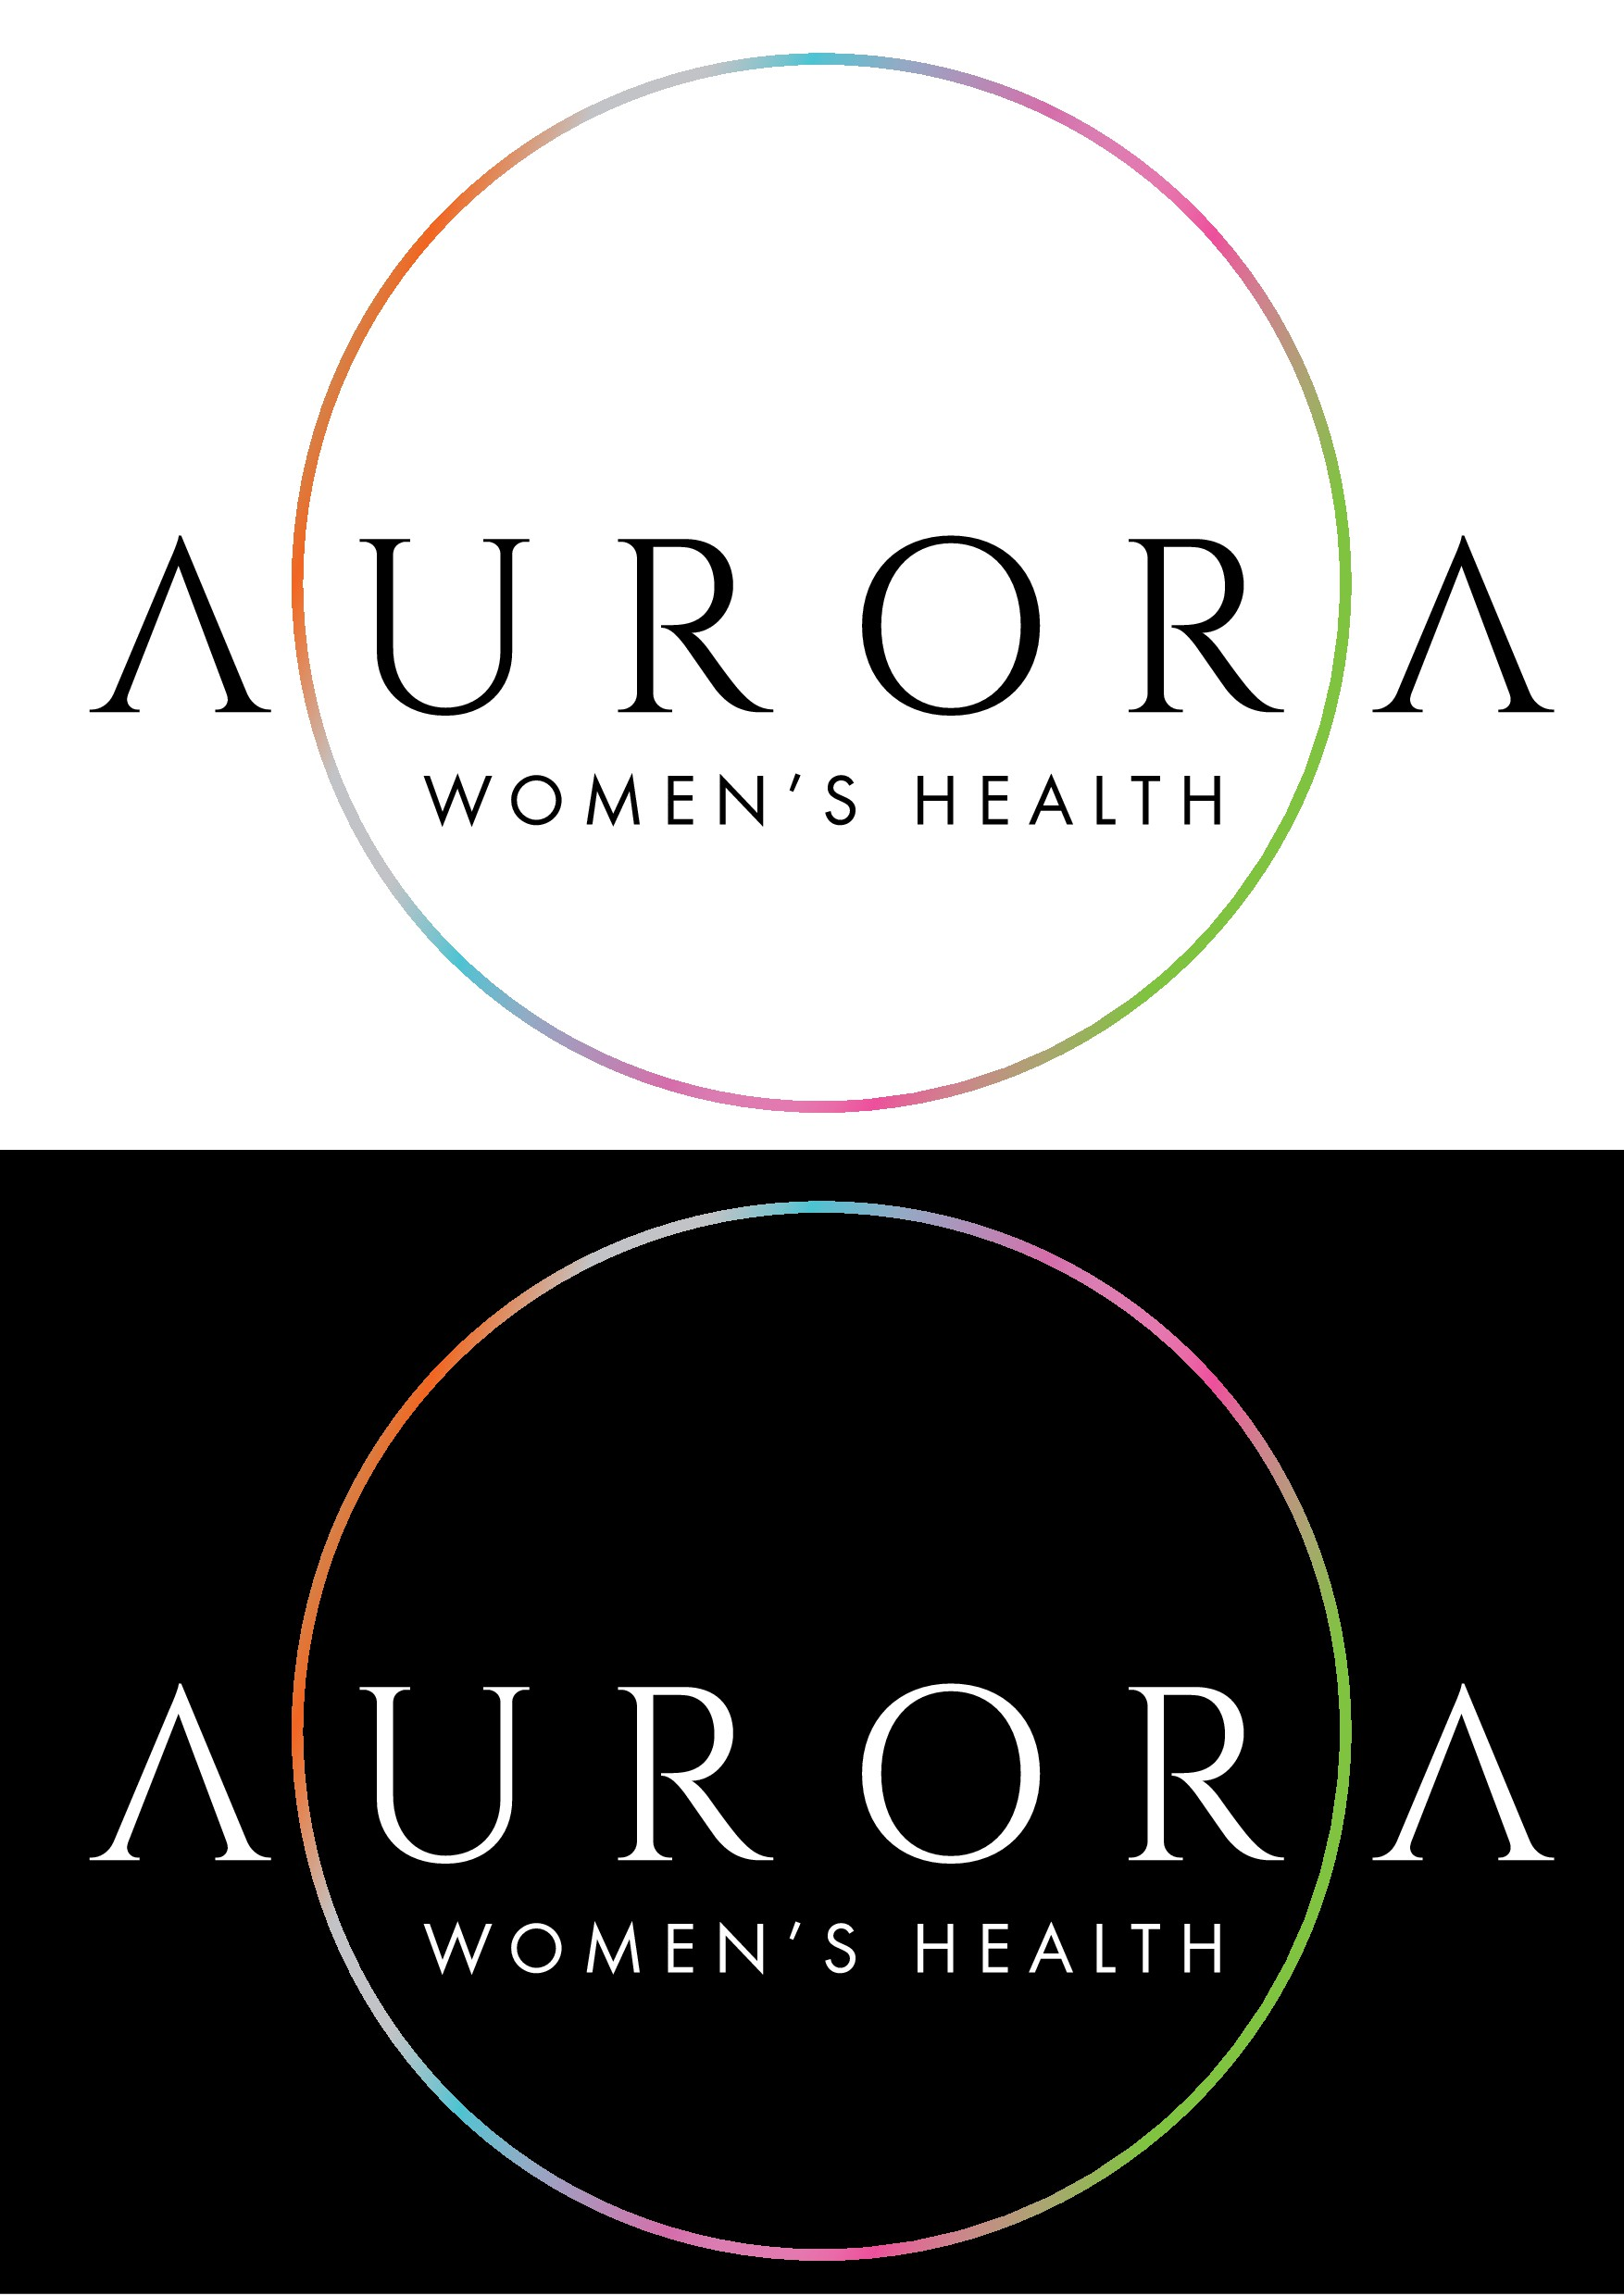 Create a logo representing a newer/refined way of providing women's health care